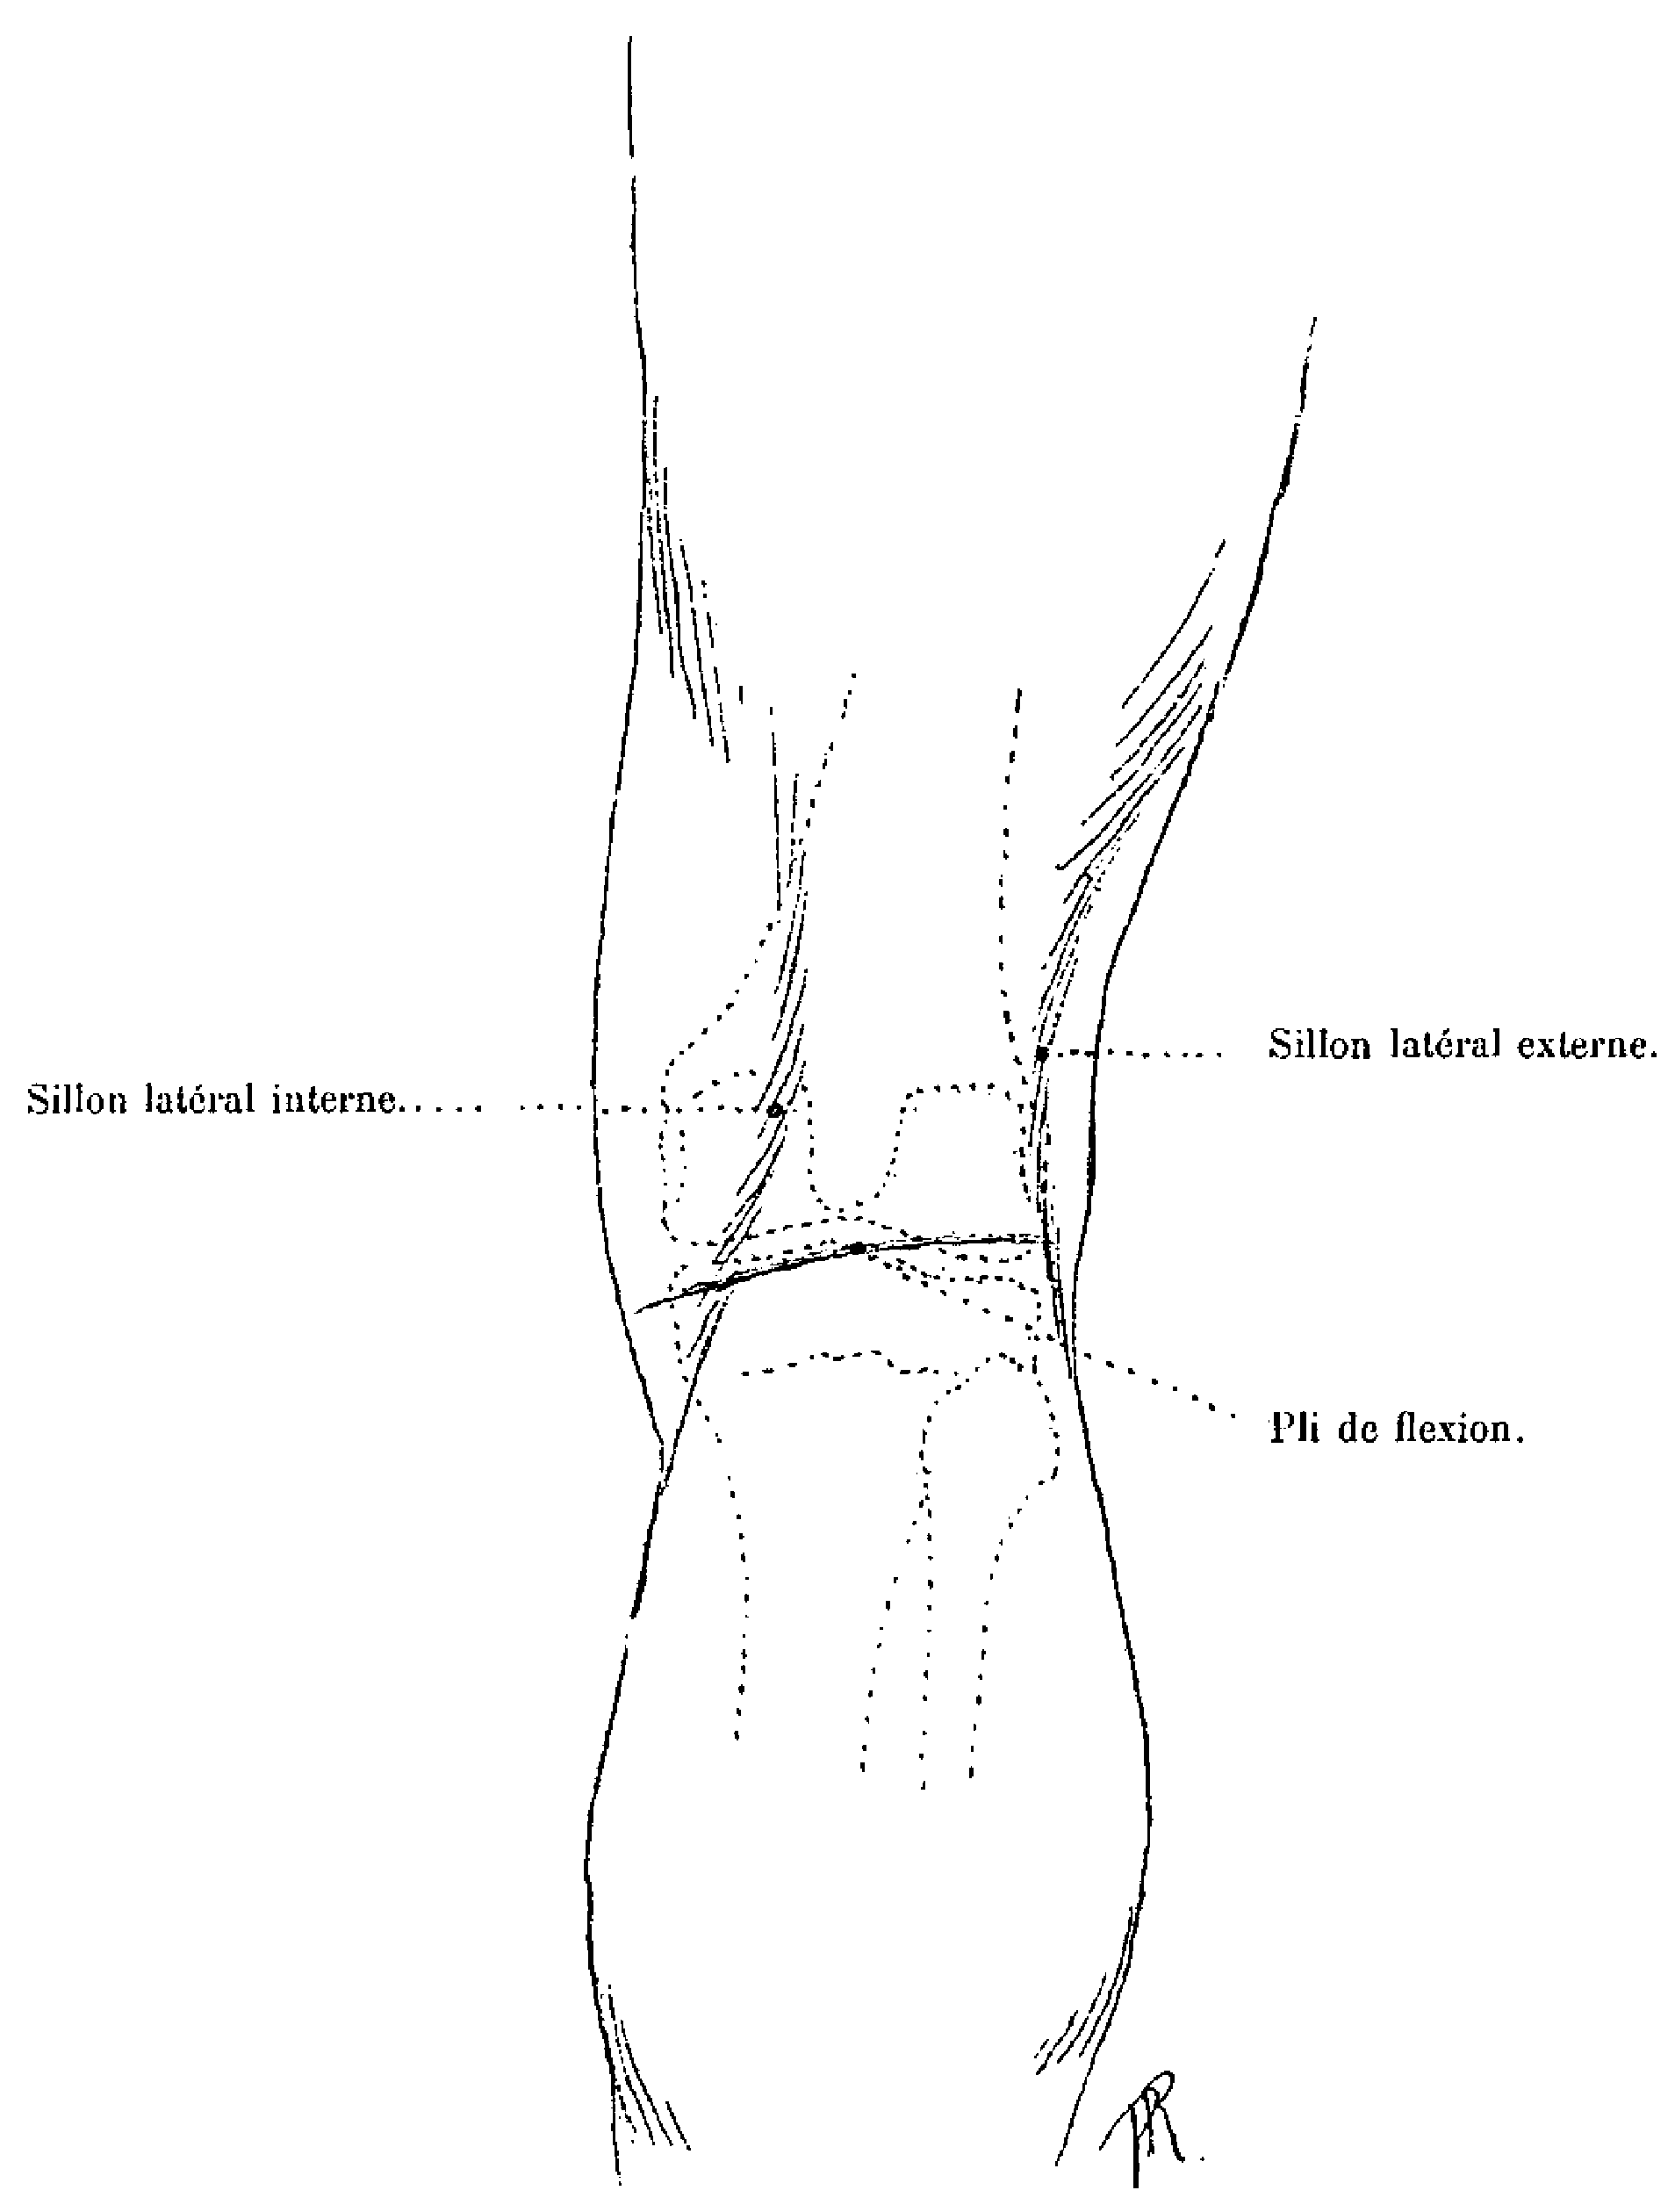 File:Richer - Anatomie artistique, 1 p. 236.png - Wikimedia Commons